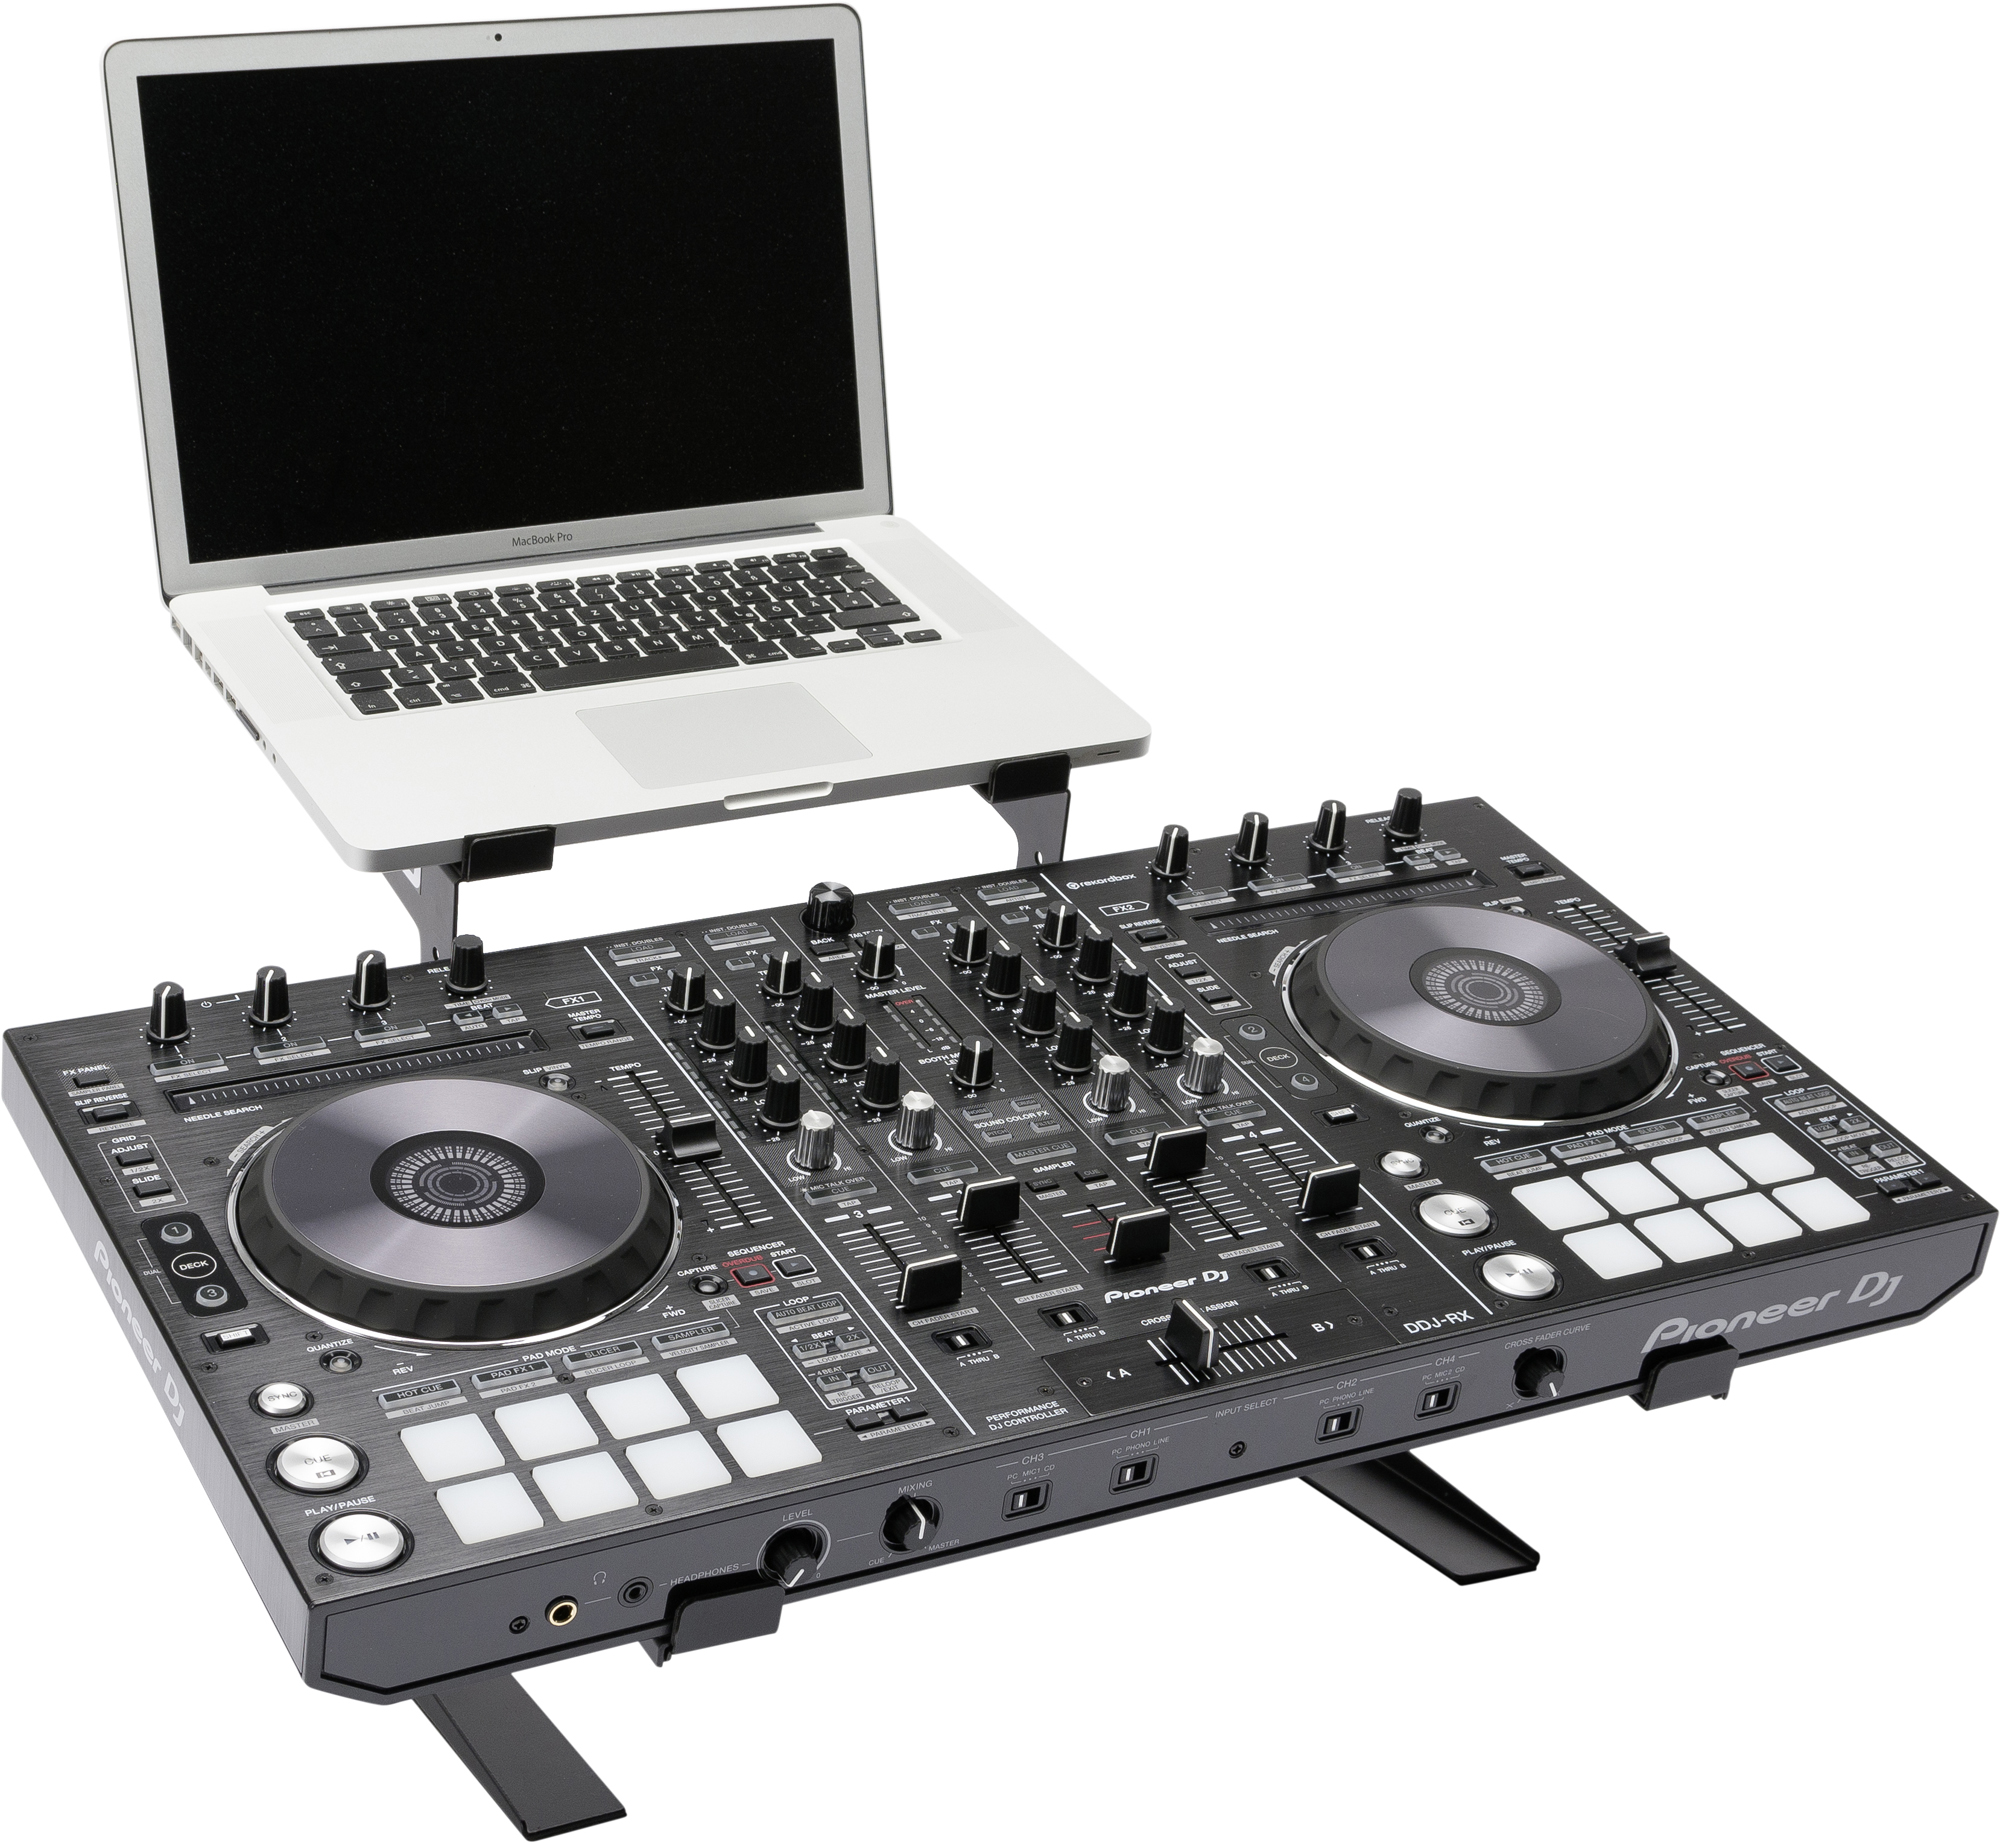 Dj Controller Stand : magma control stand ii controller and laptop stand mount mga75541 agiprodj ~ Hamham.info Haus und Dekorationen